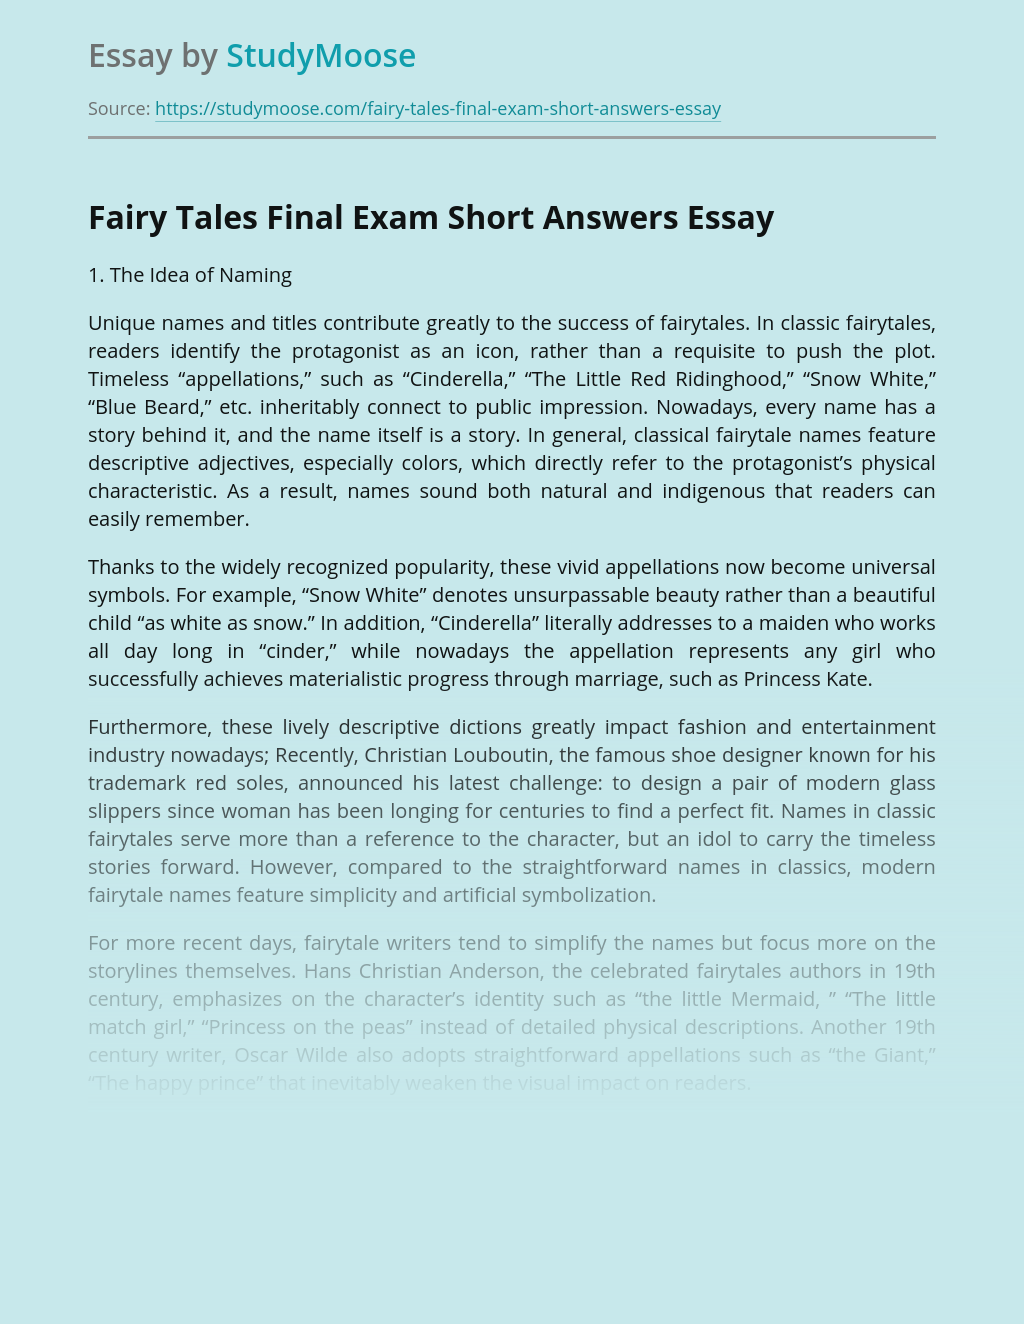 Fairy Tales Final Exam Short Answers